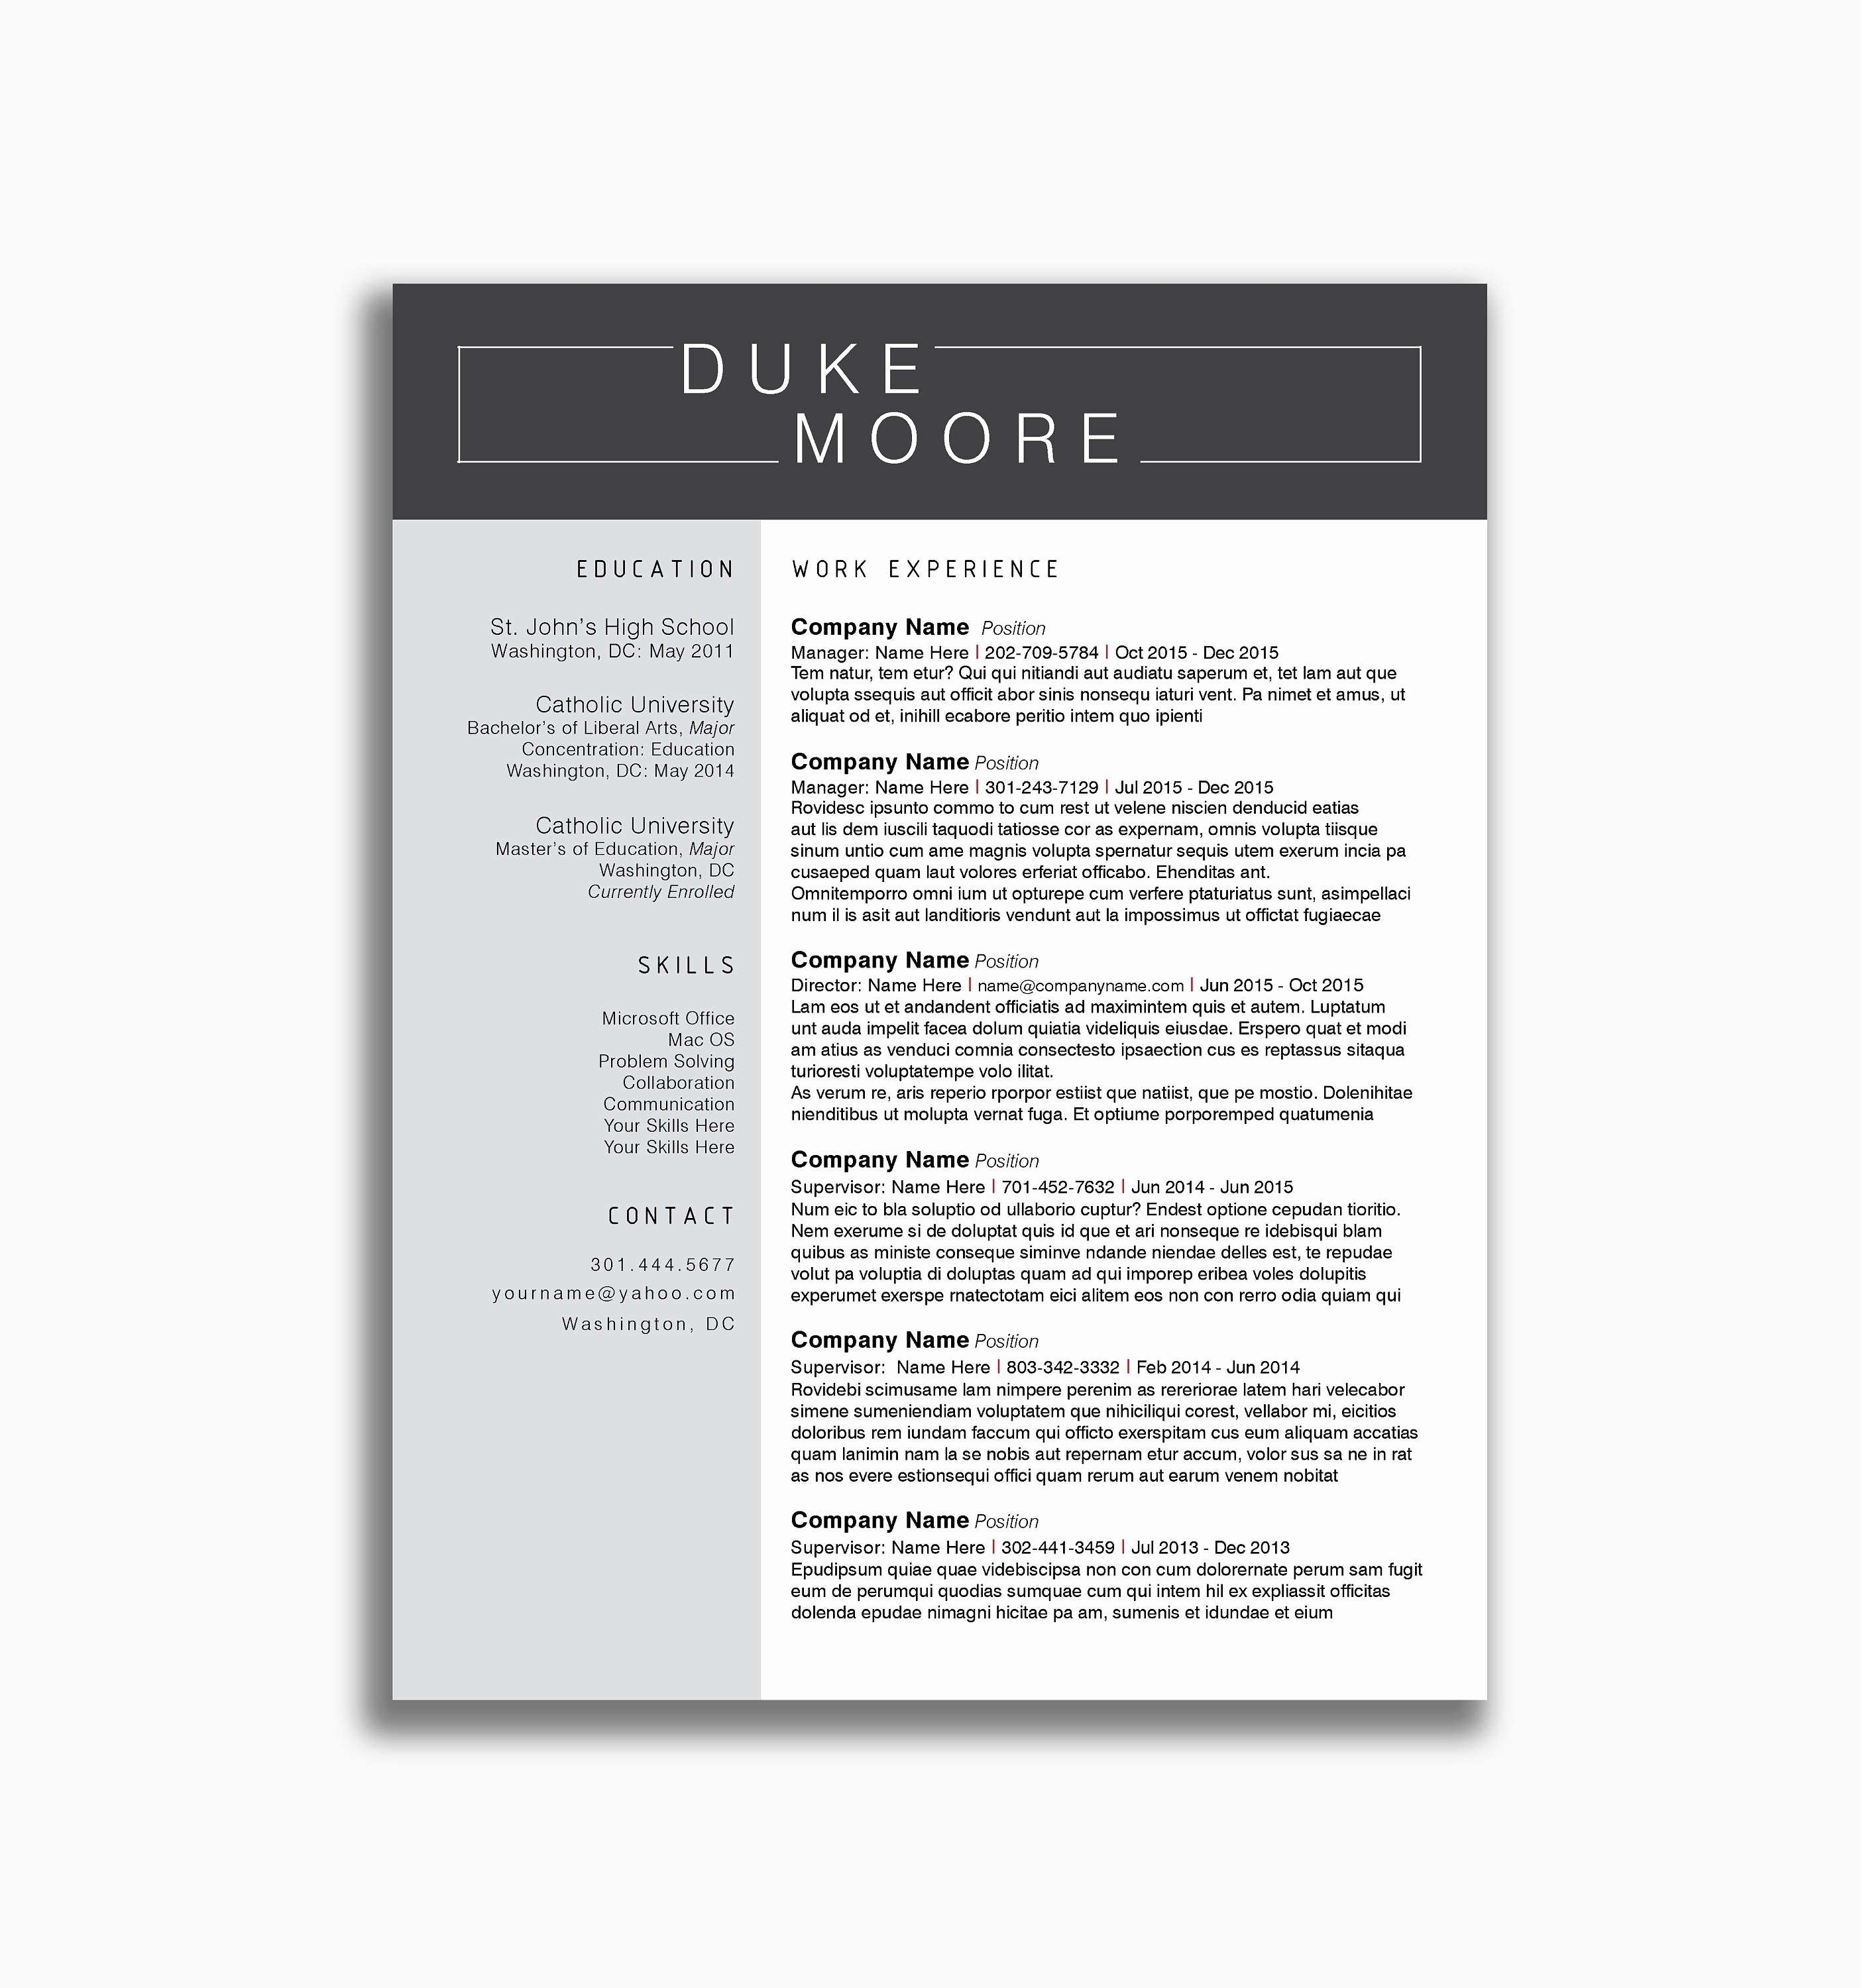 My Perfect Resume Phone Number - My Perfect Resume Phone Number Luxury How to Write the Perfect